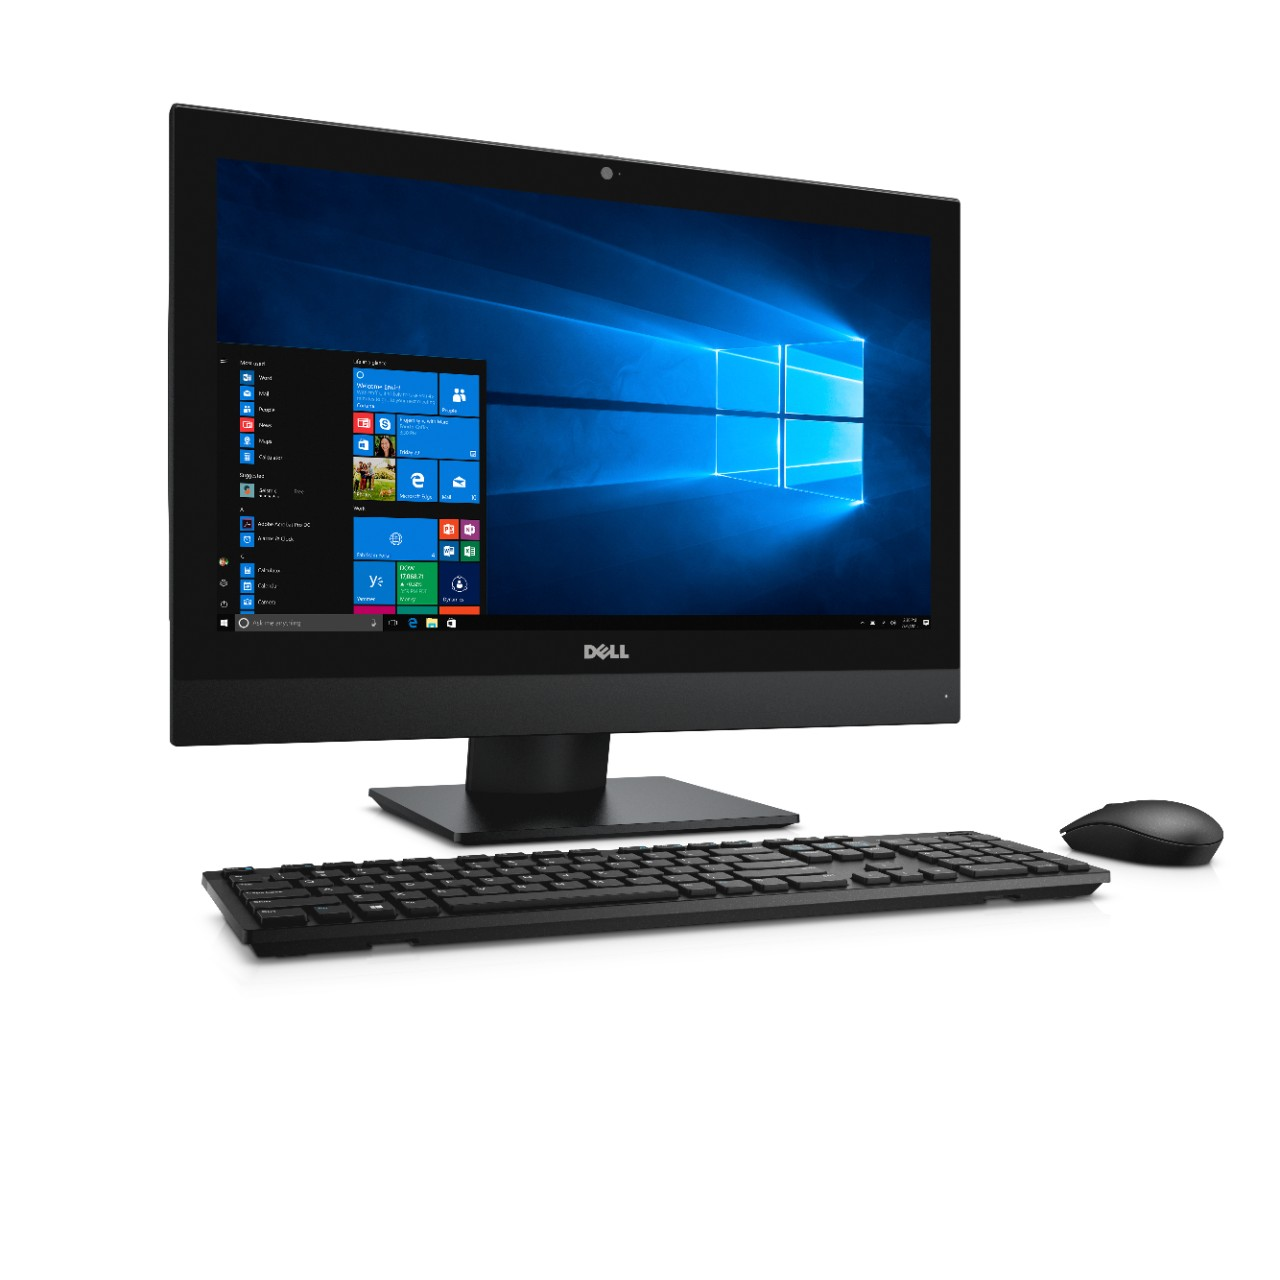 "Dell Optiplex 5250 AIO 21.5"" FHD i5-7500/8G/256GB SSD/MCR/HDMI/DP/DVD RW/WLAN+BT/W10P/3RNBD/Černý"